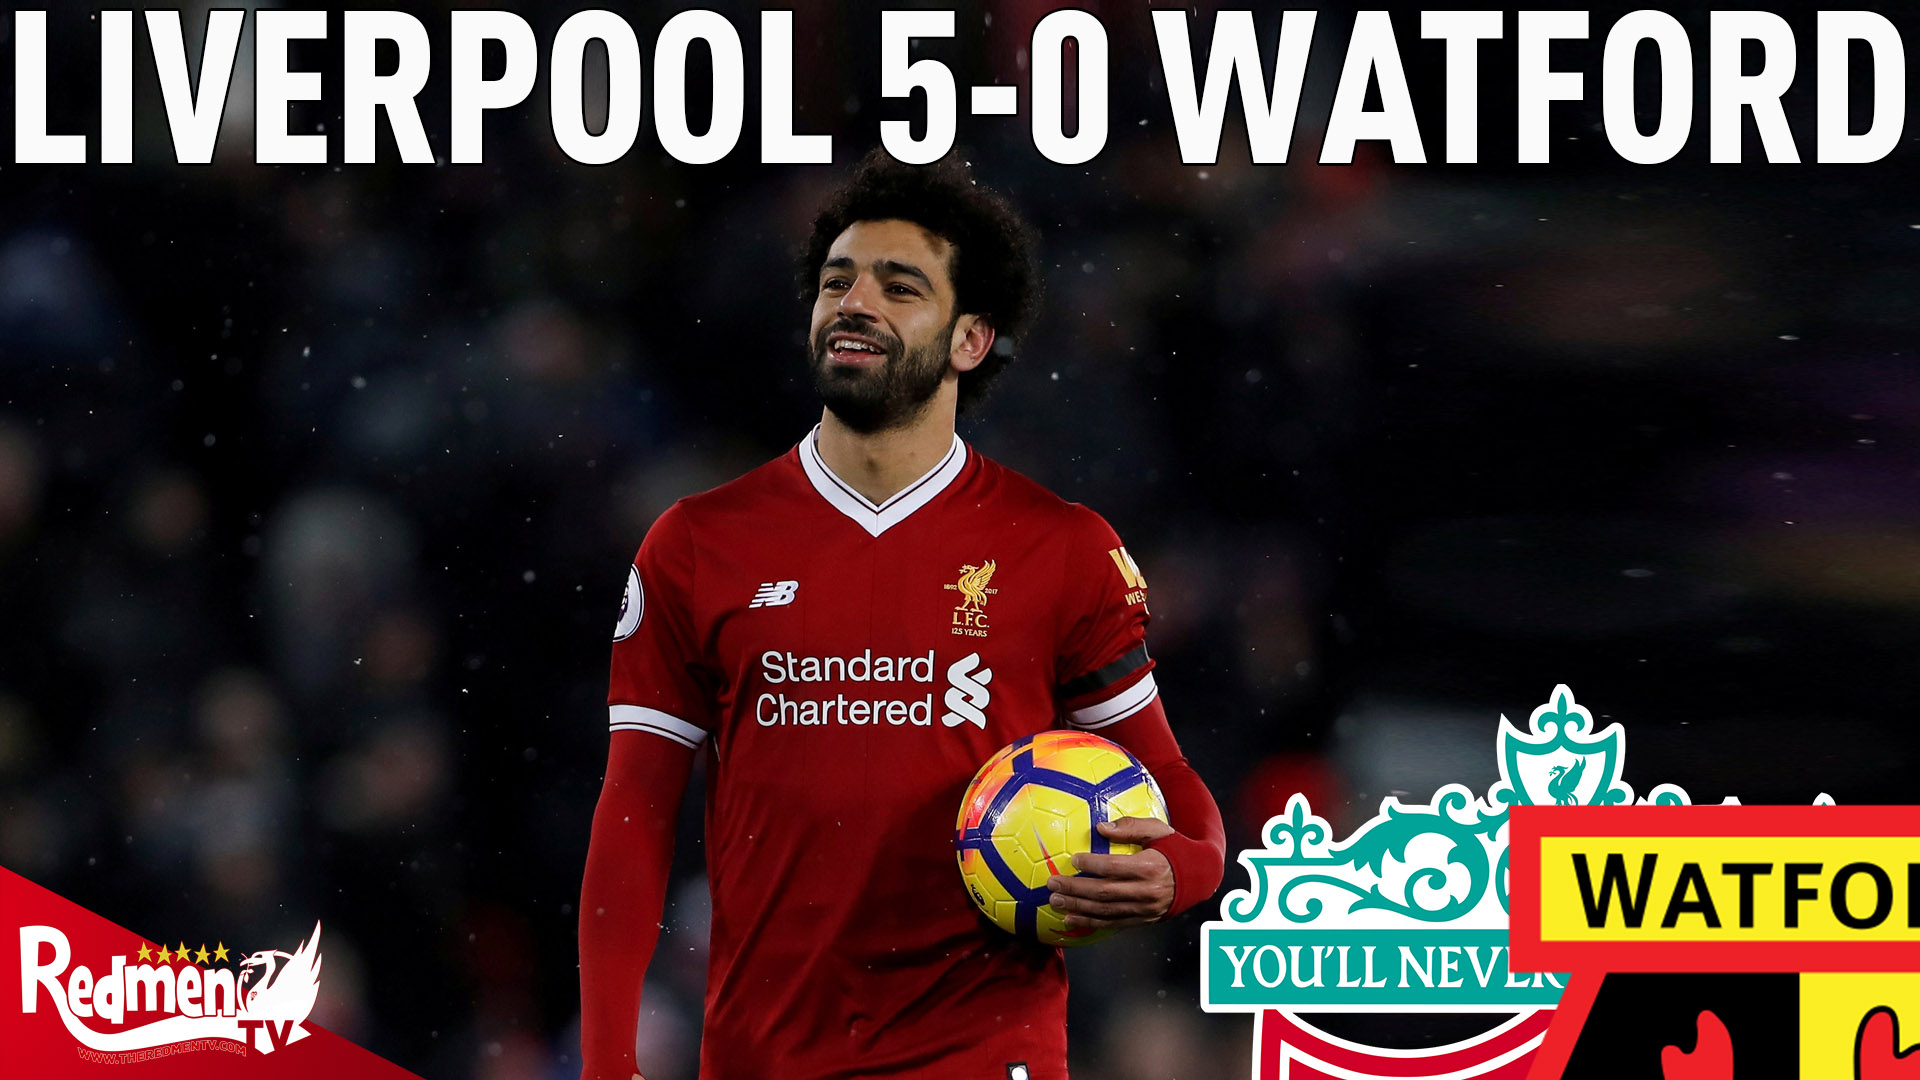 Liverpool 5-0 Watford | ALL Post Match Reaction Content